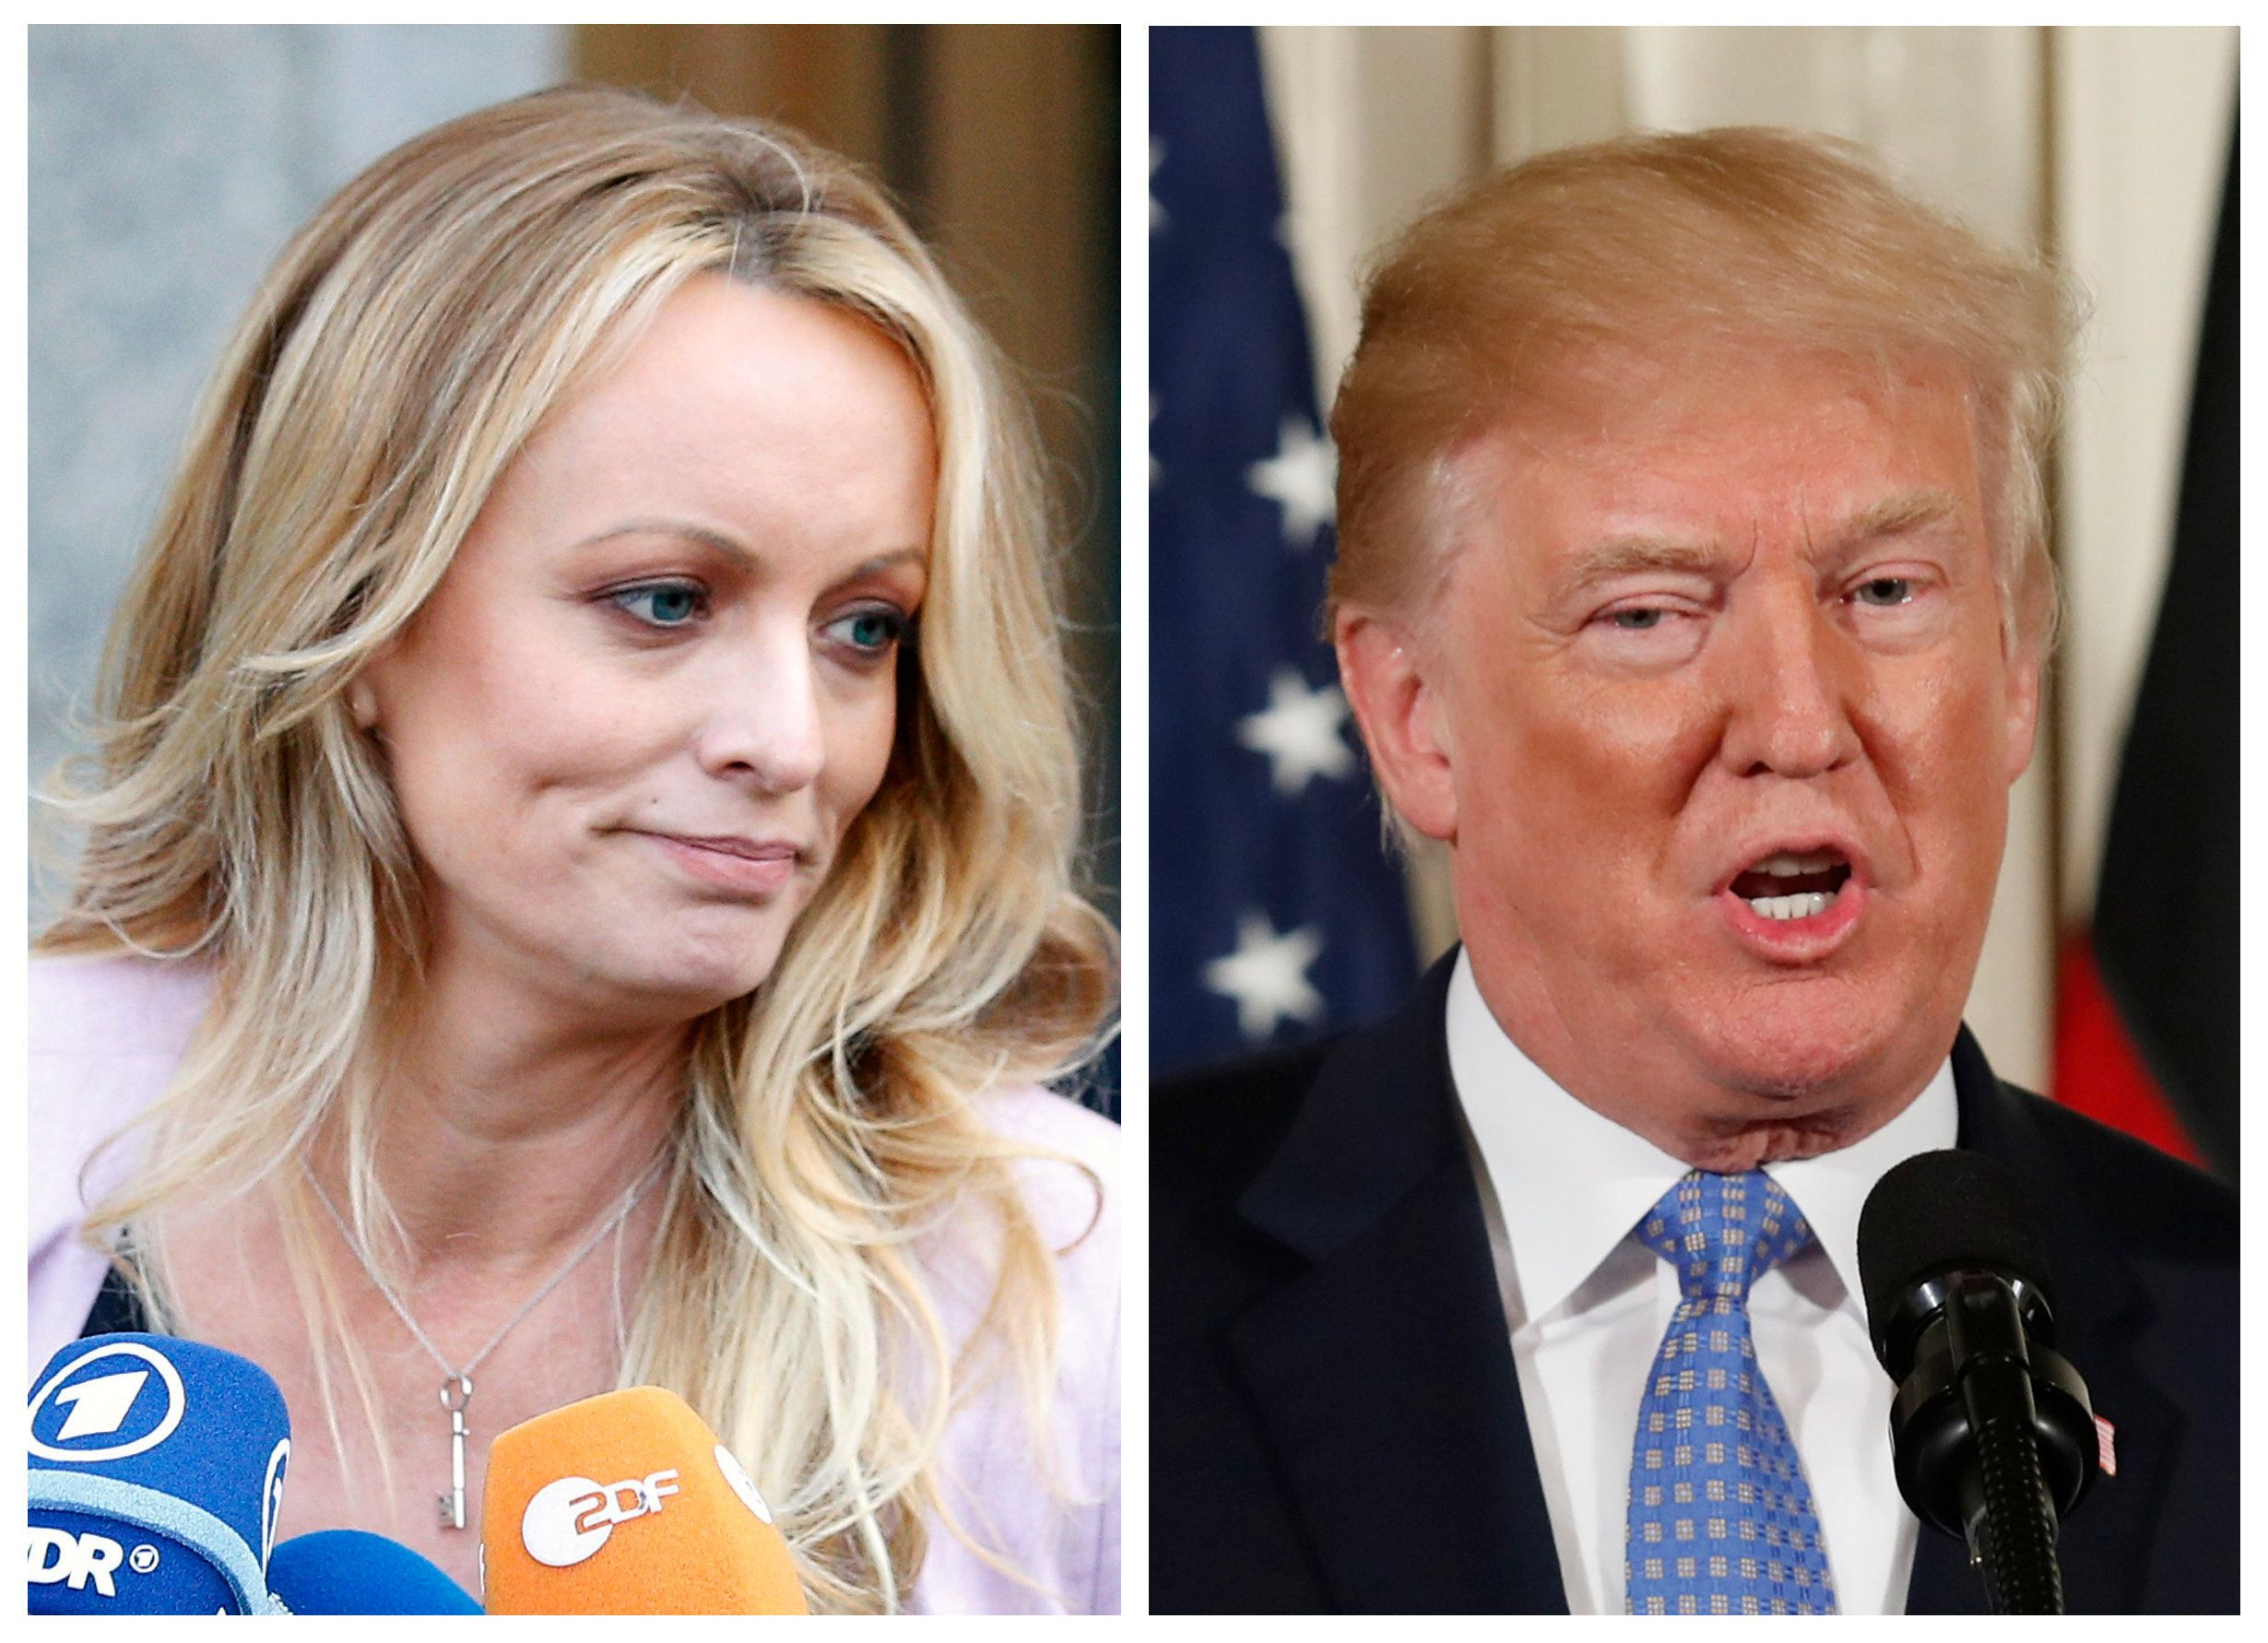 FILE PHOTO: A combination photo shows Adult film actress Stephanie Clifford, also known as Stormy Daniels speaking in New York City, and U.S. President Donald Trump speaking in Washington, Michigan, U.S. on April 16, 2018 and April 28, 2018 respectively.  . REUTERS/Brendan Mcdermid (L) REUTERS/Joshua Roberts (R)/File Photos